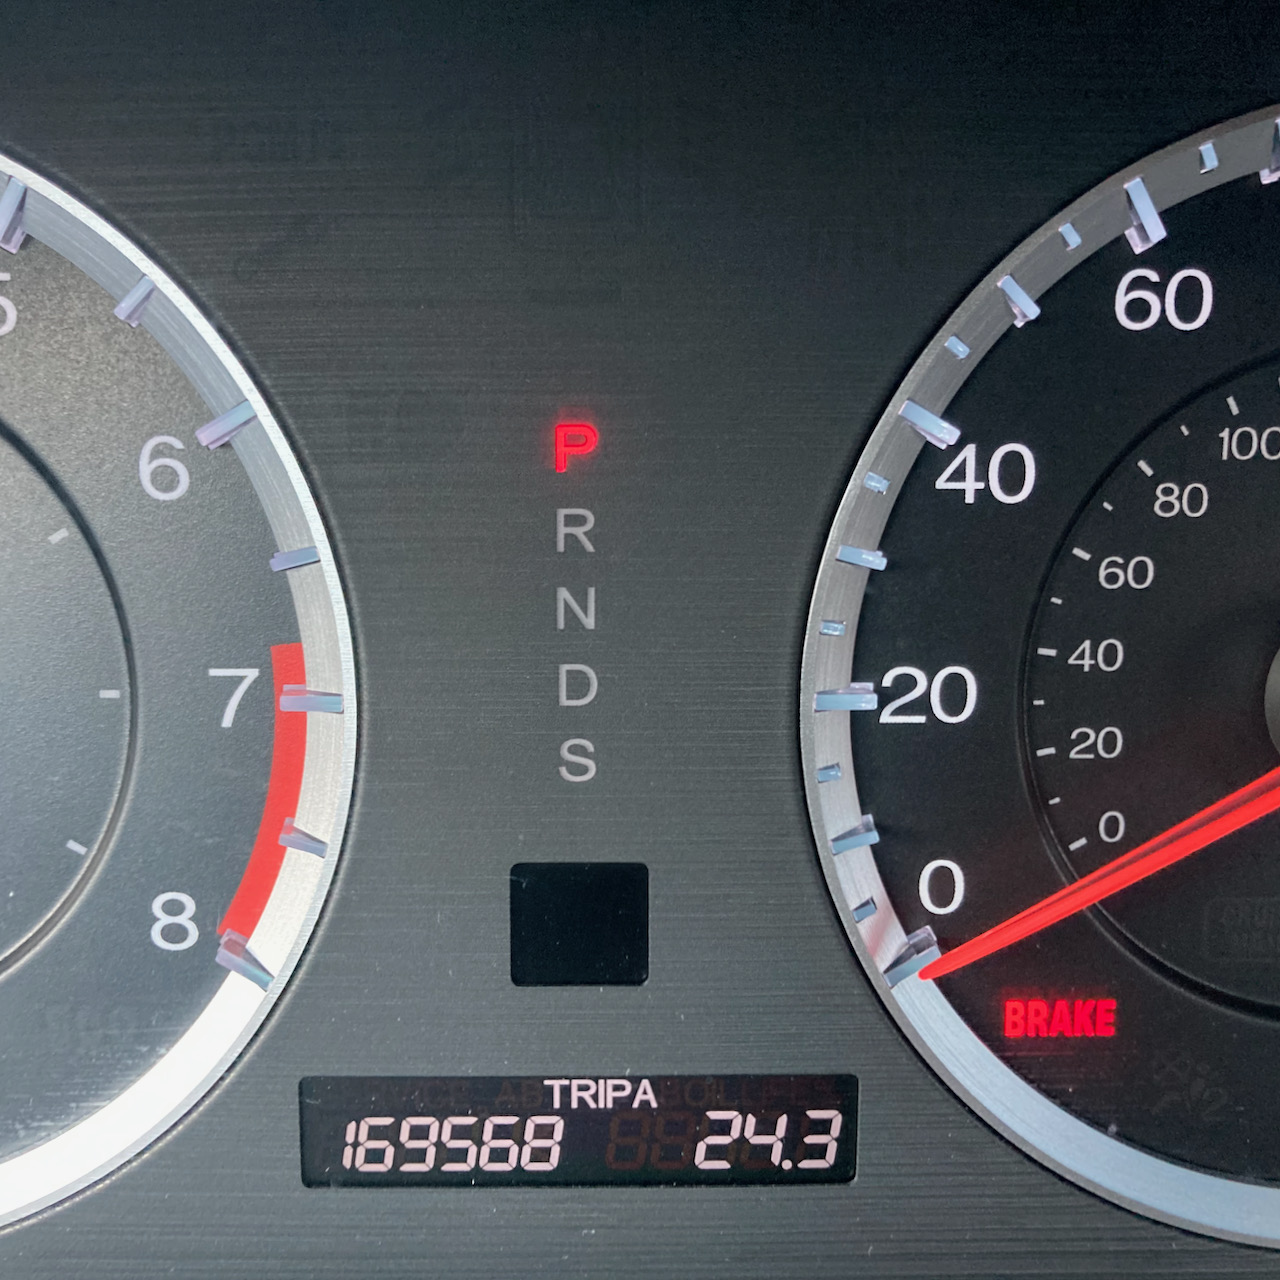 Car odometer reading 169568 TRIP A 24.3